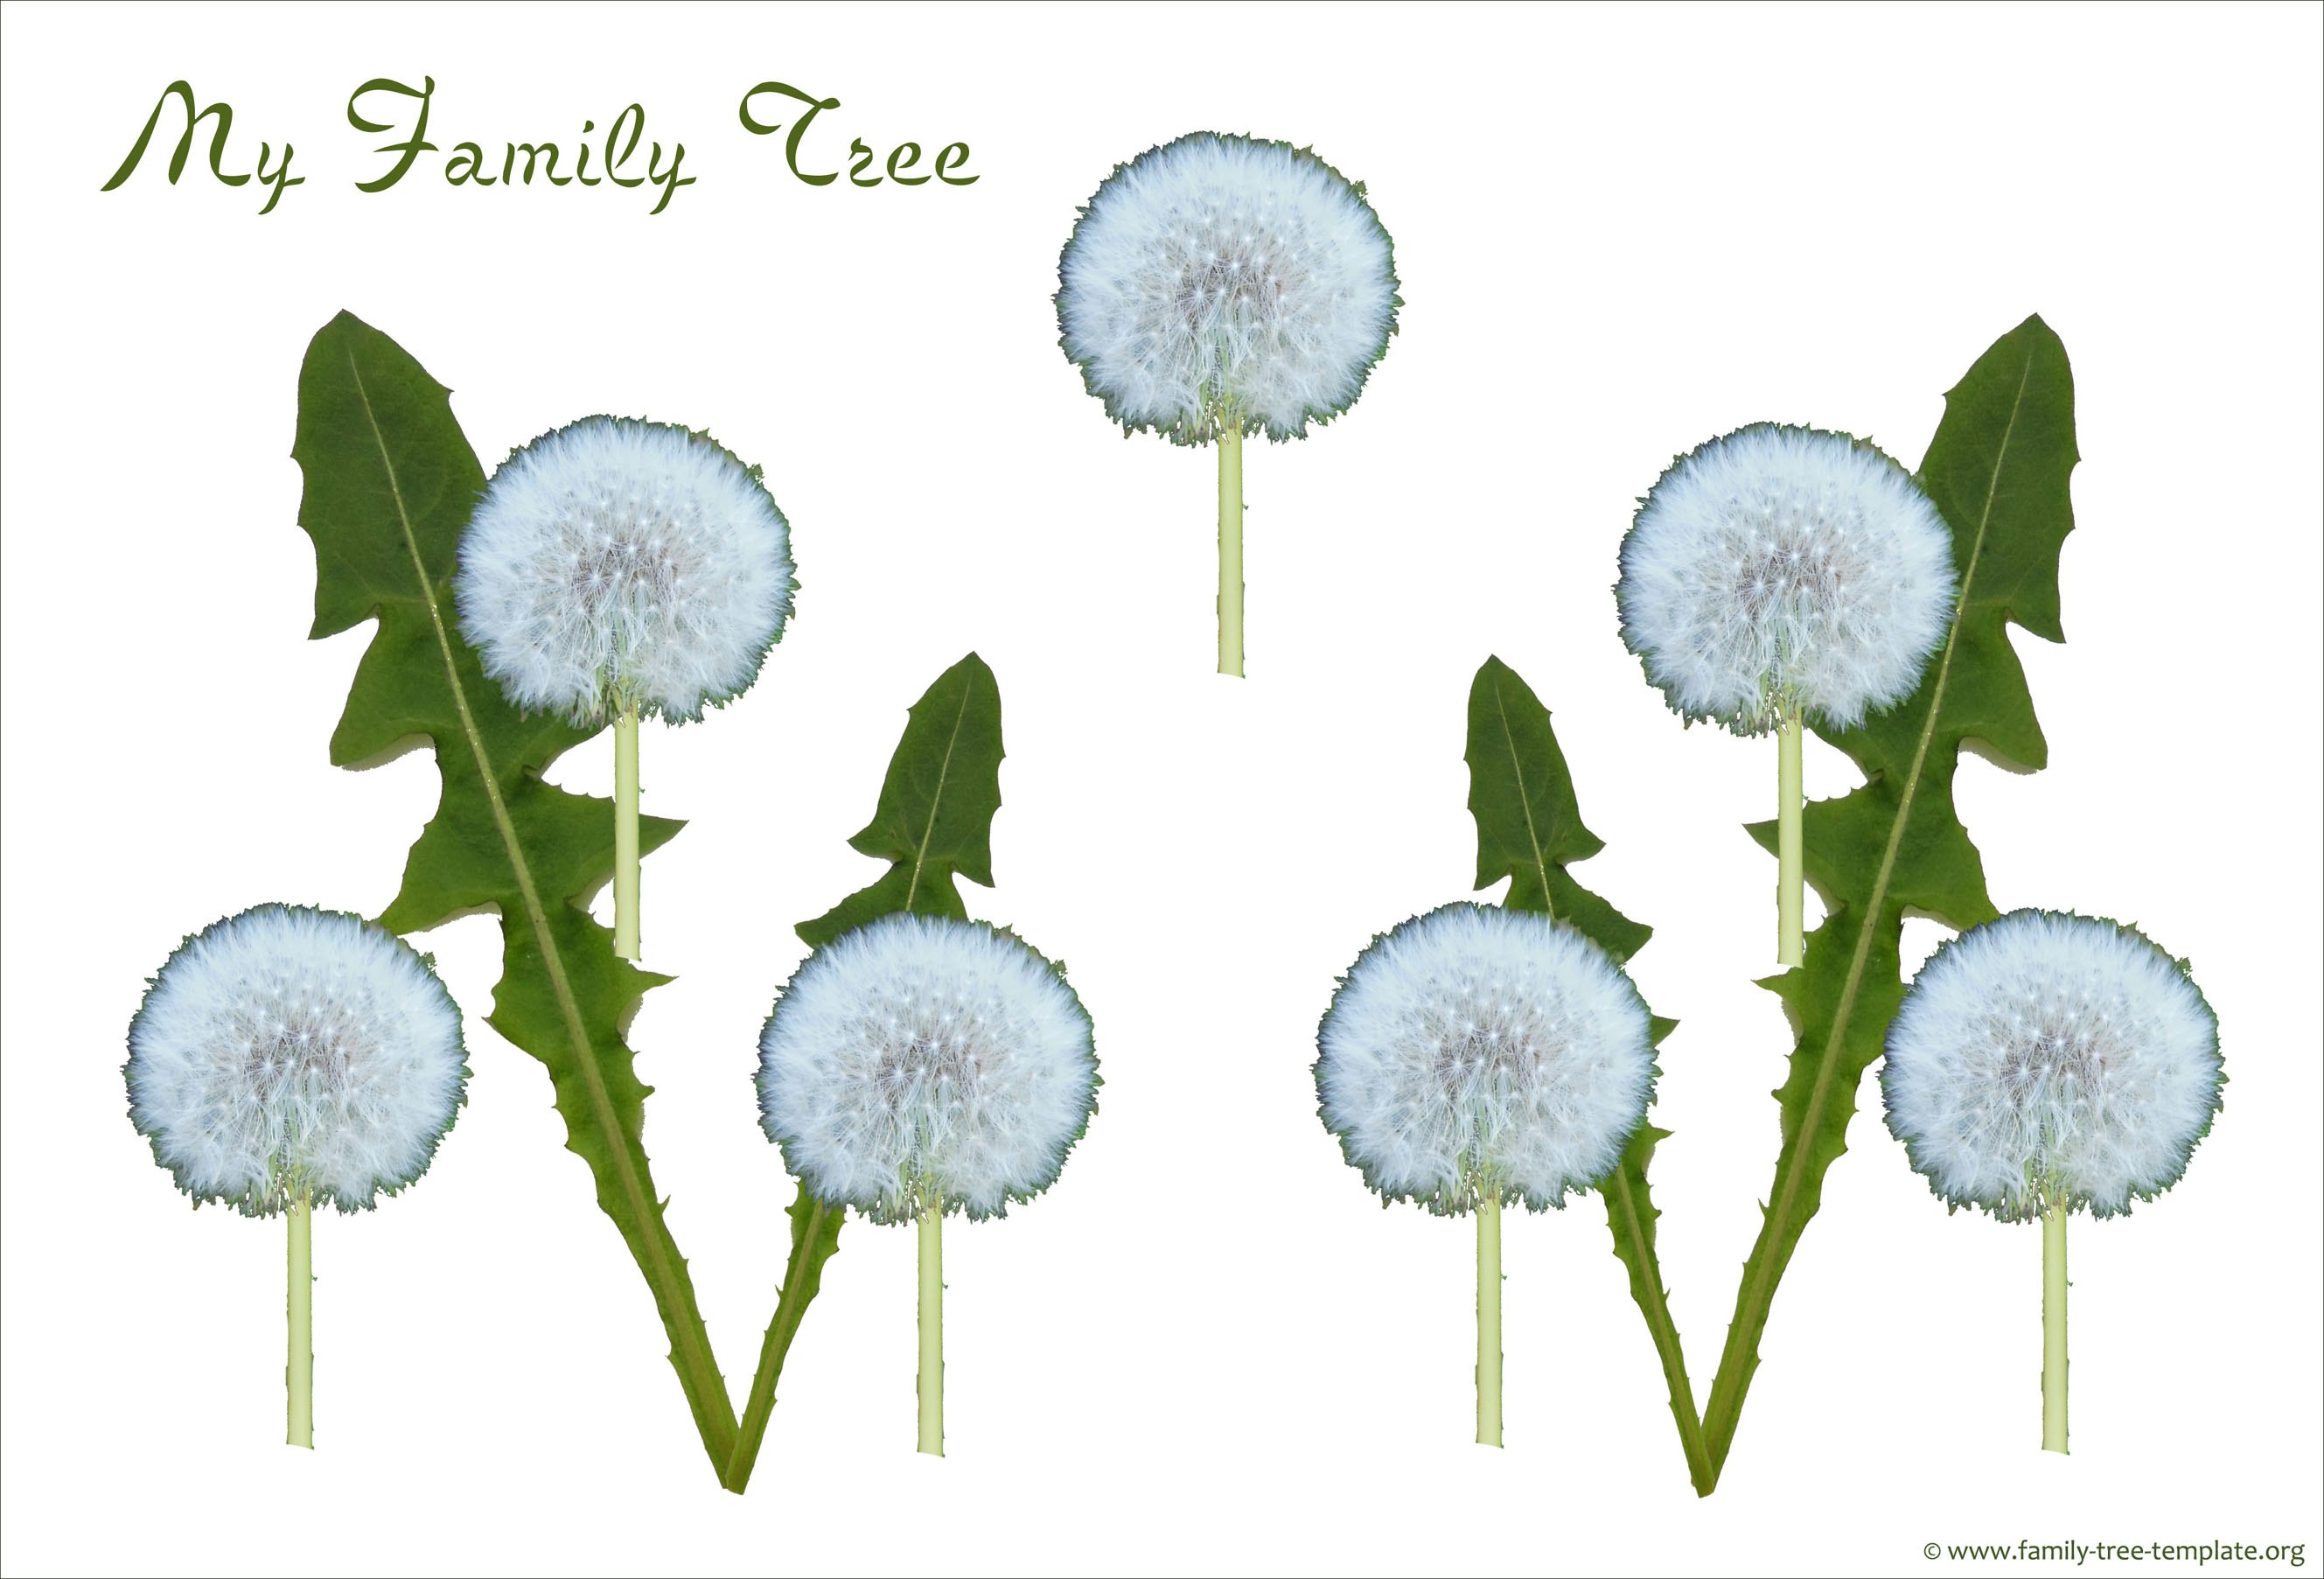 Free Family Tree Template Designs For Making Ancestry Charts Pertaining To Blank Family Tree Template 3 Generations